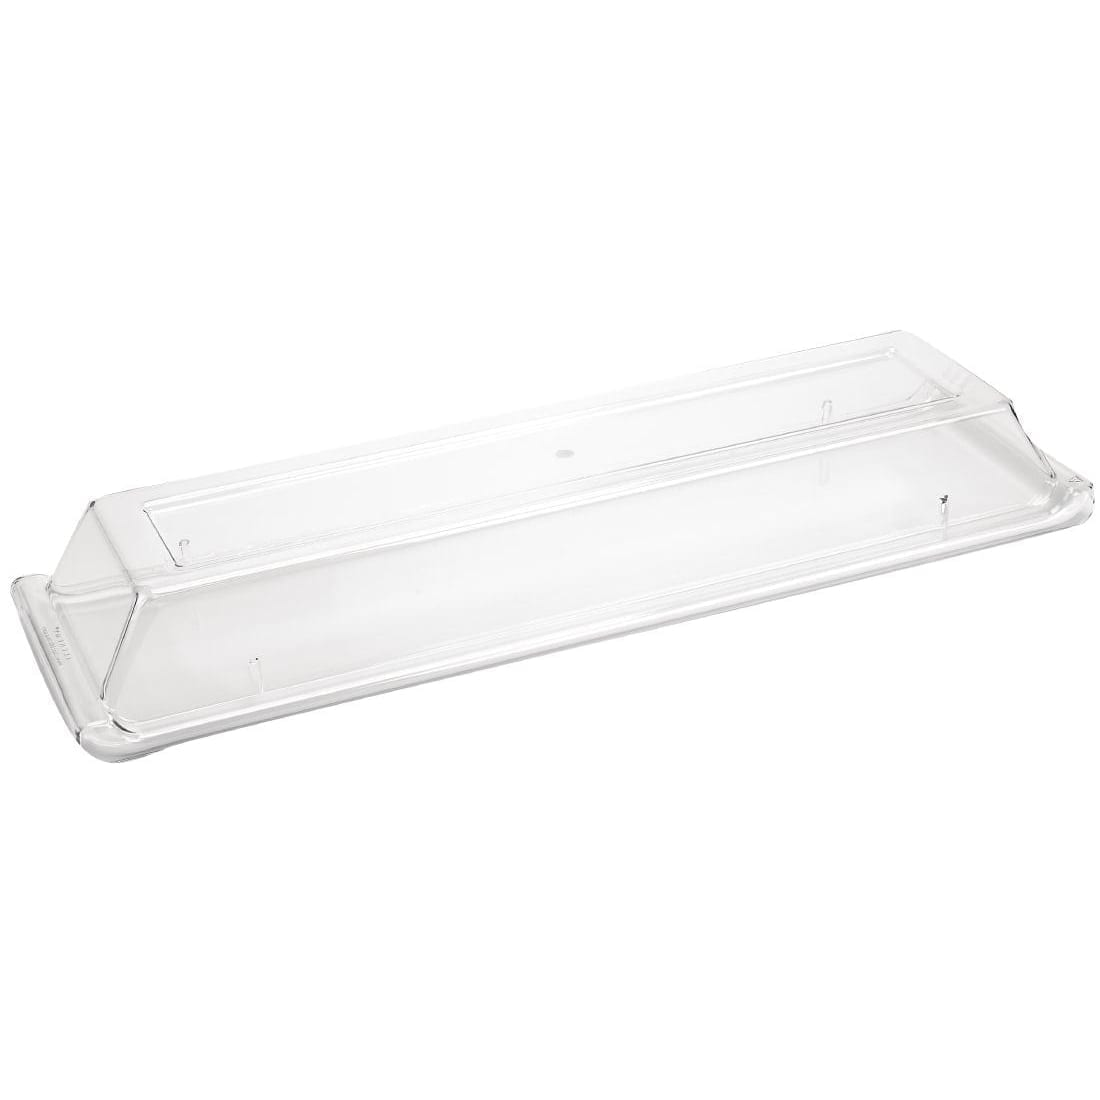 "Alchemy Buffet Tray Cover for GF212 - 460x100mm (18x3 7/8"") (Box 2) (Direct)-0"